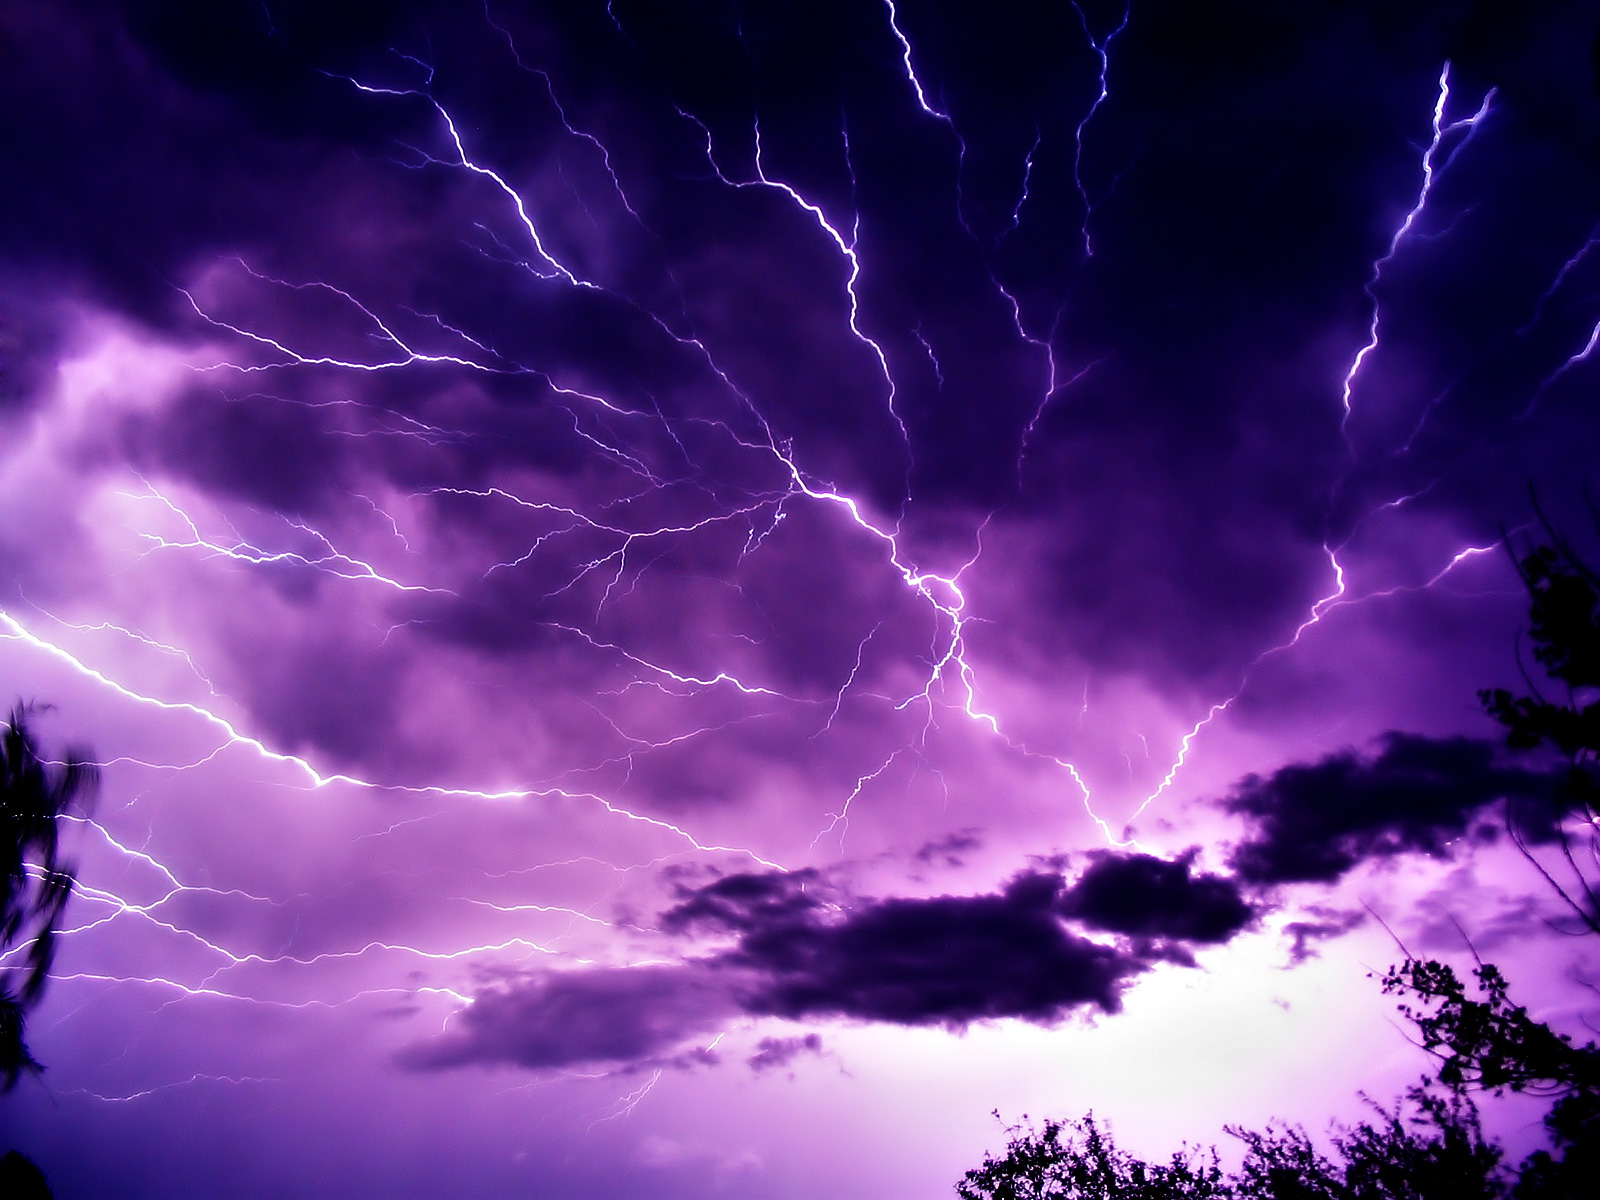 of lightning to bring forward extraordinary wallpapers like this one 1600x1200